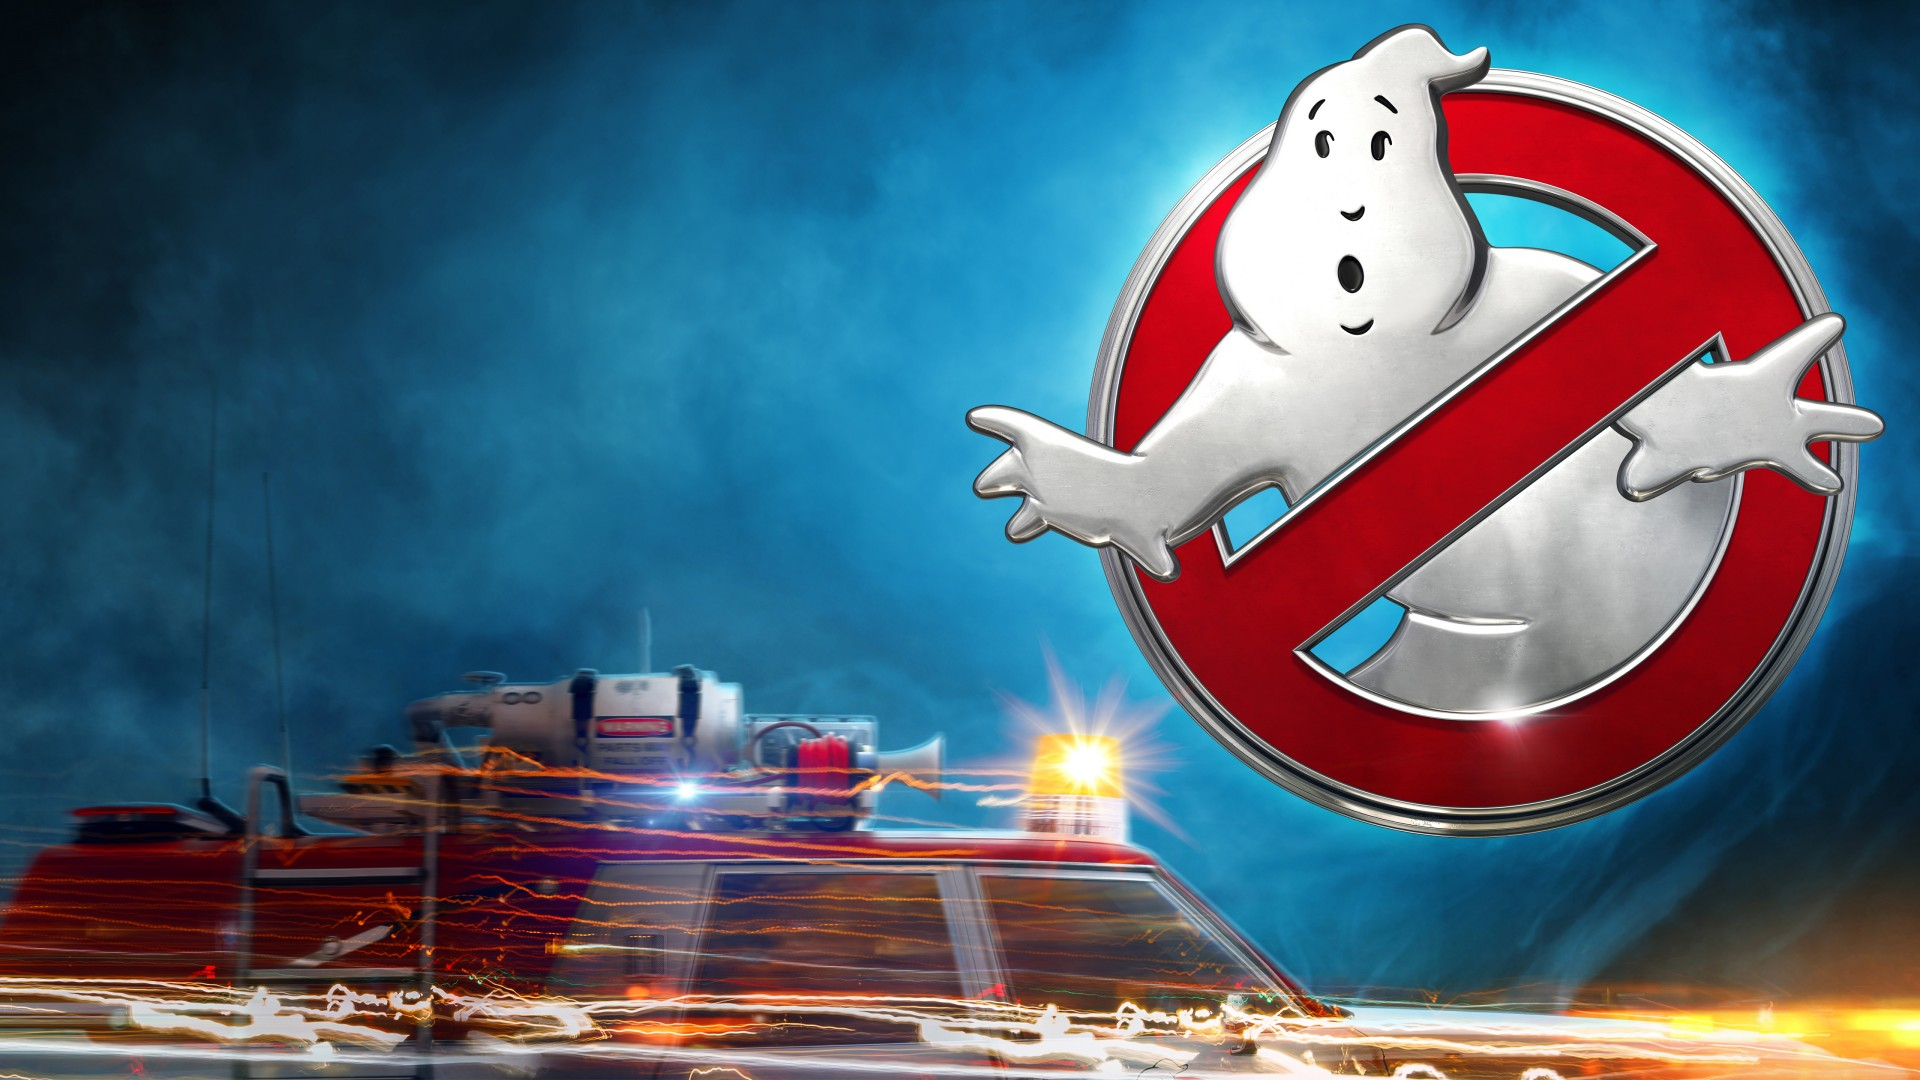 Cute Marshmallow Wallpaper Hd Ghostbusters 4k 5k 2016 Movie Wallpapers Hd Wallpapers